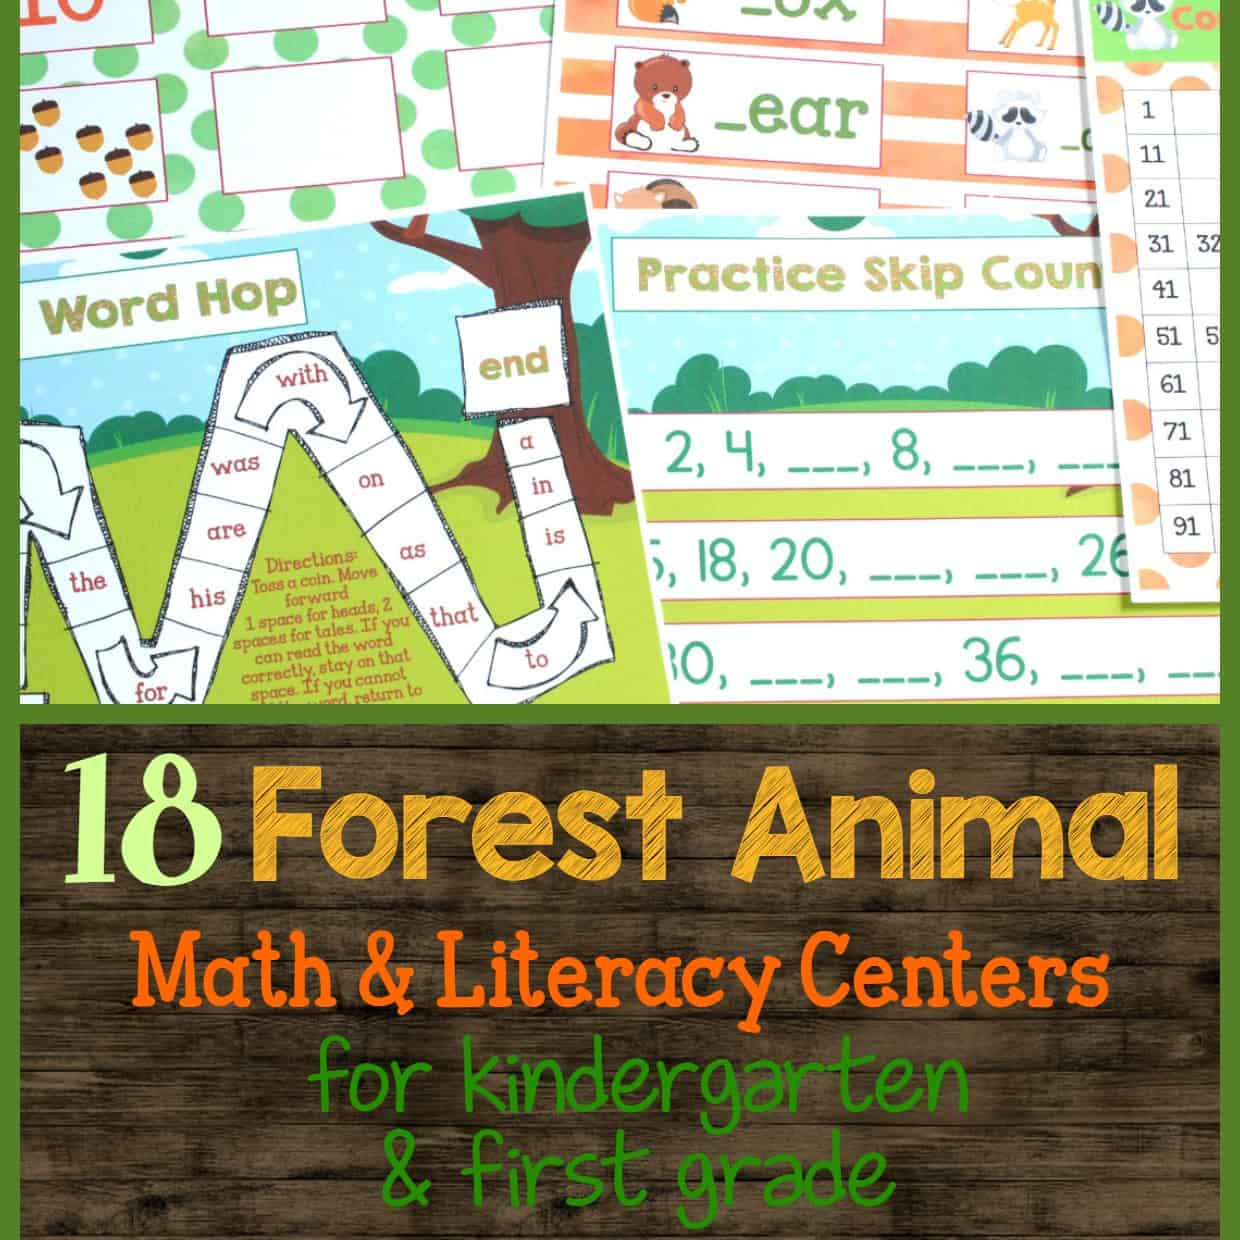 Forest Animals Math & Literacy Centers